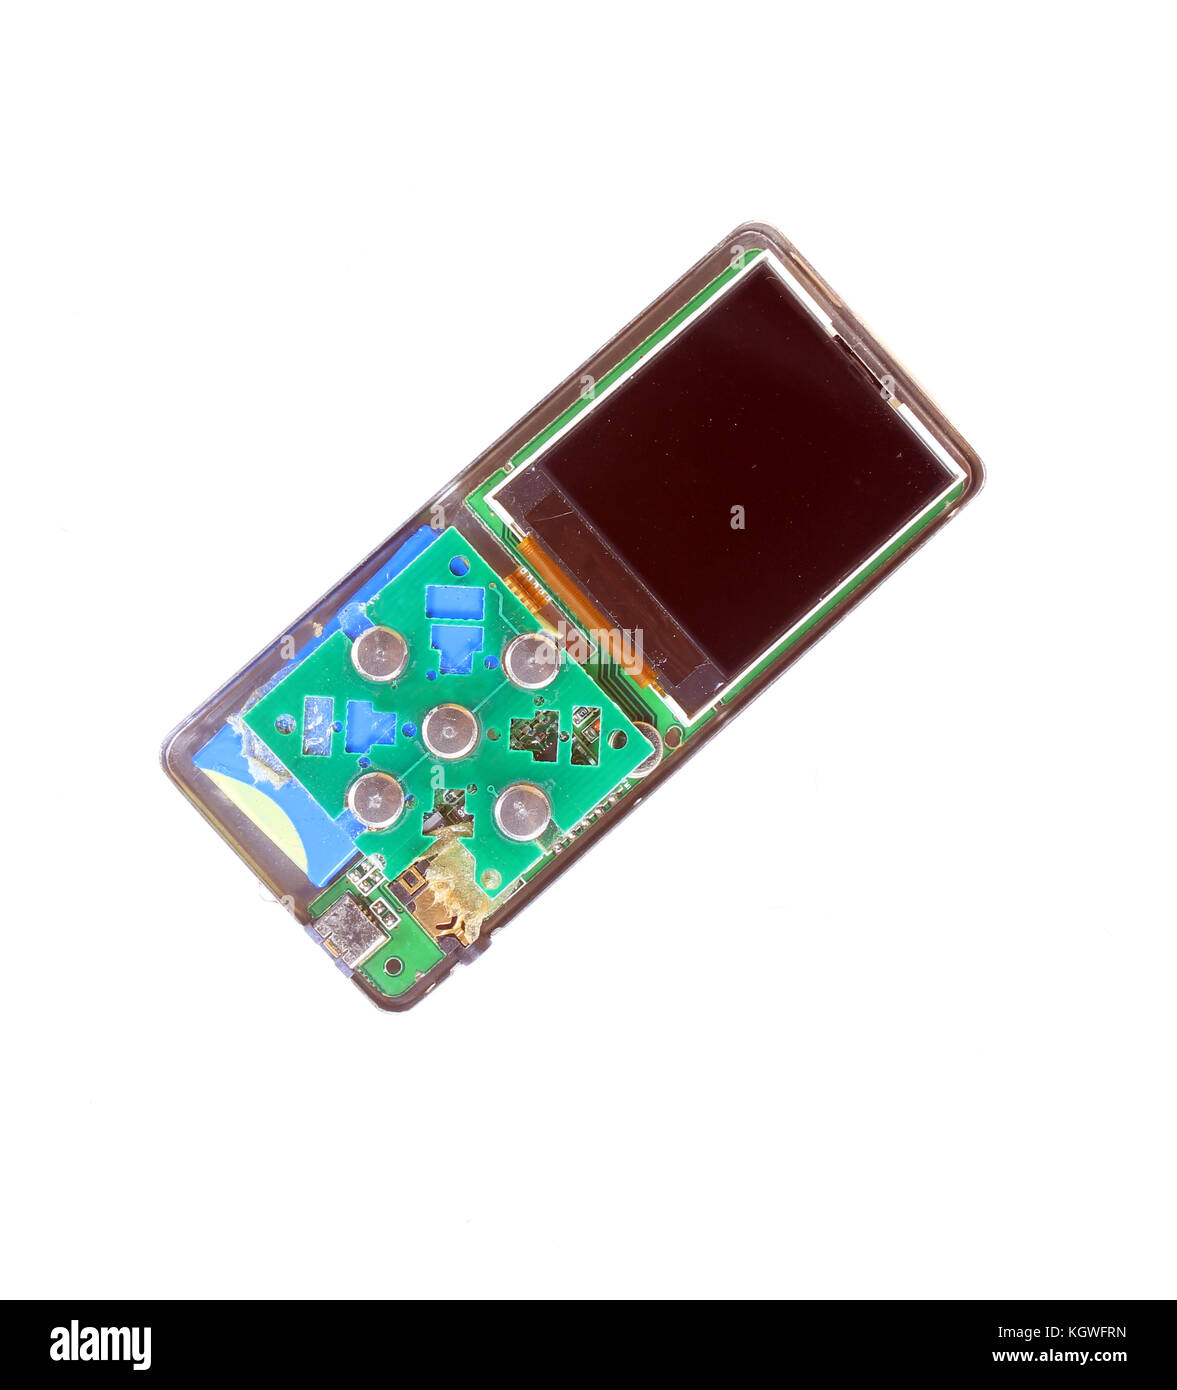 A stripped MP3 player showing its circuitry and buttons with lcd screen. - Stock Image